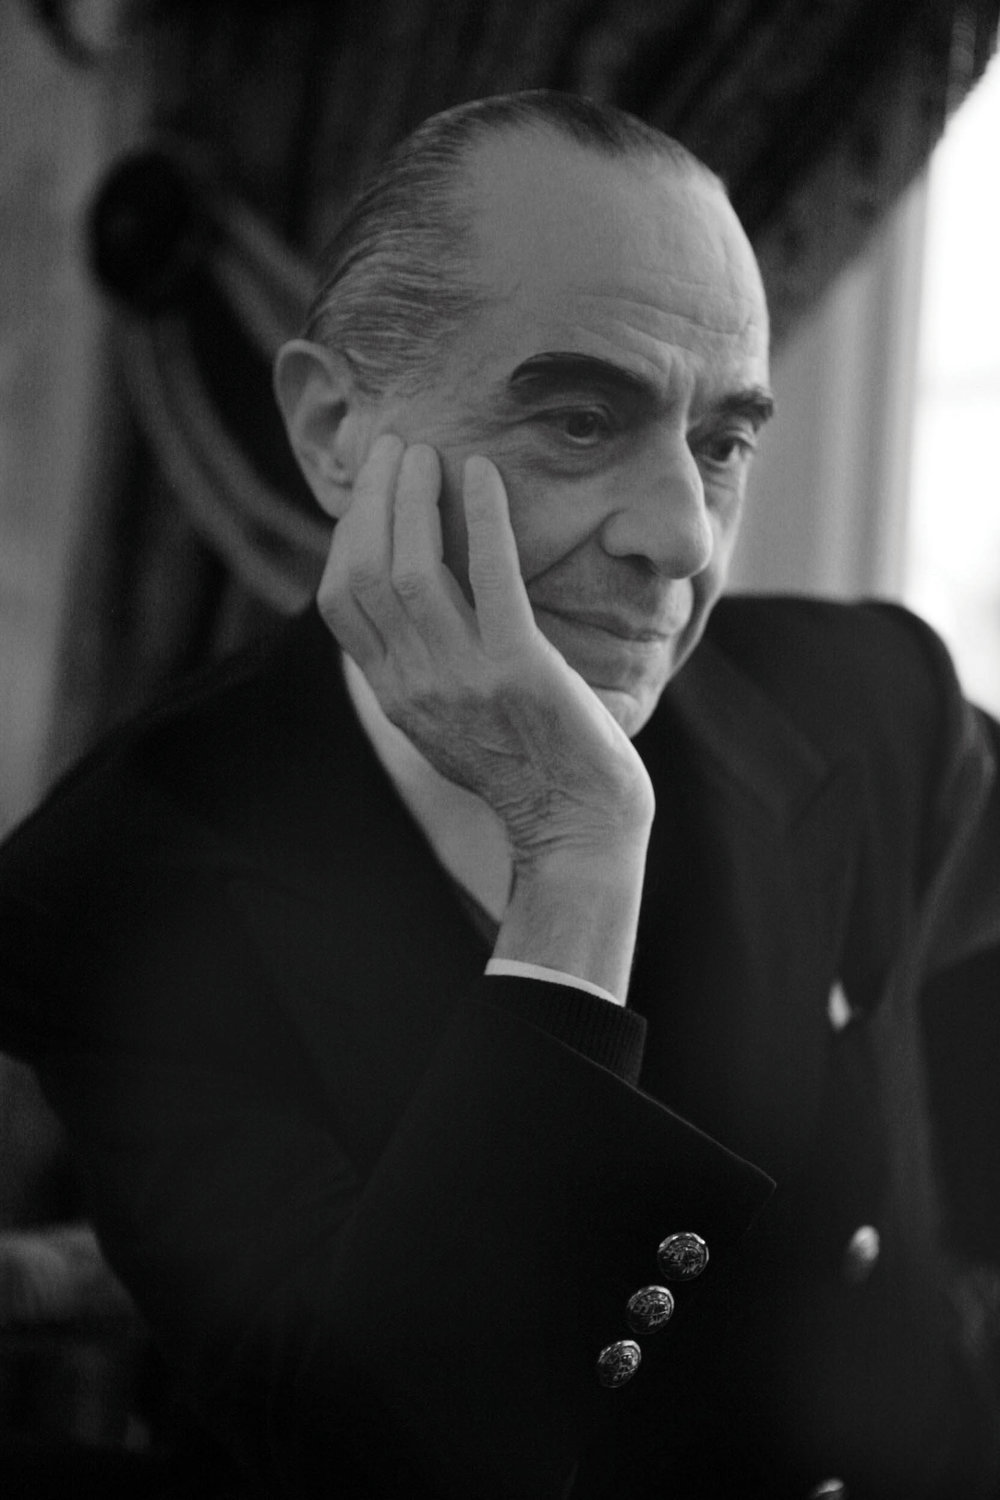 Serge Lutens at Ritz hotel in Paris 1 B&W - crédits photo Francesco Brigida copy.jpg